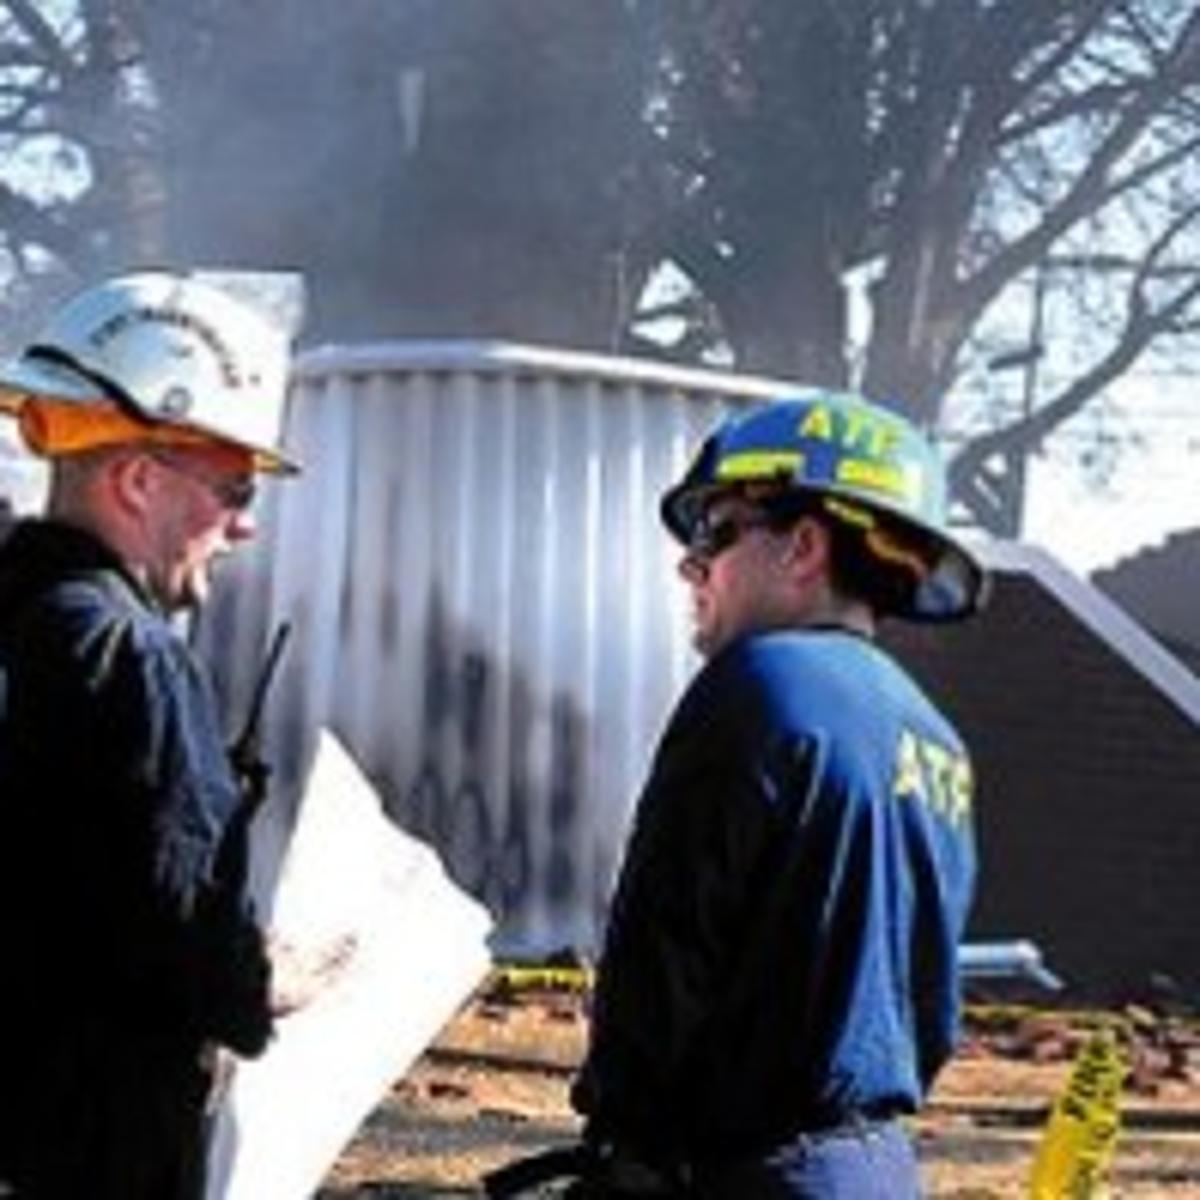 ATF: Cause of church fire may never be known, but no indication of